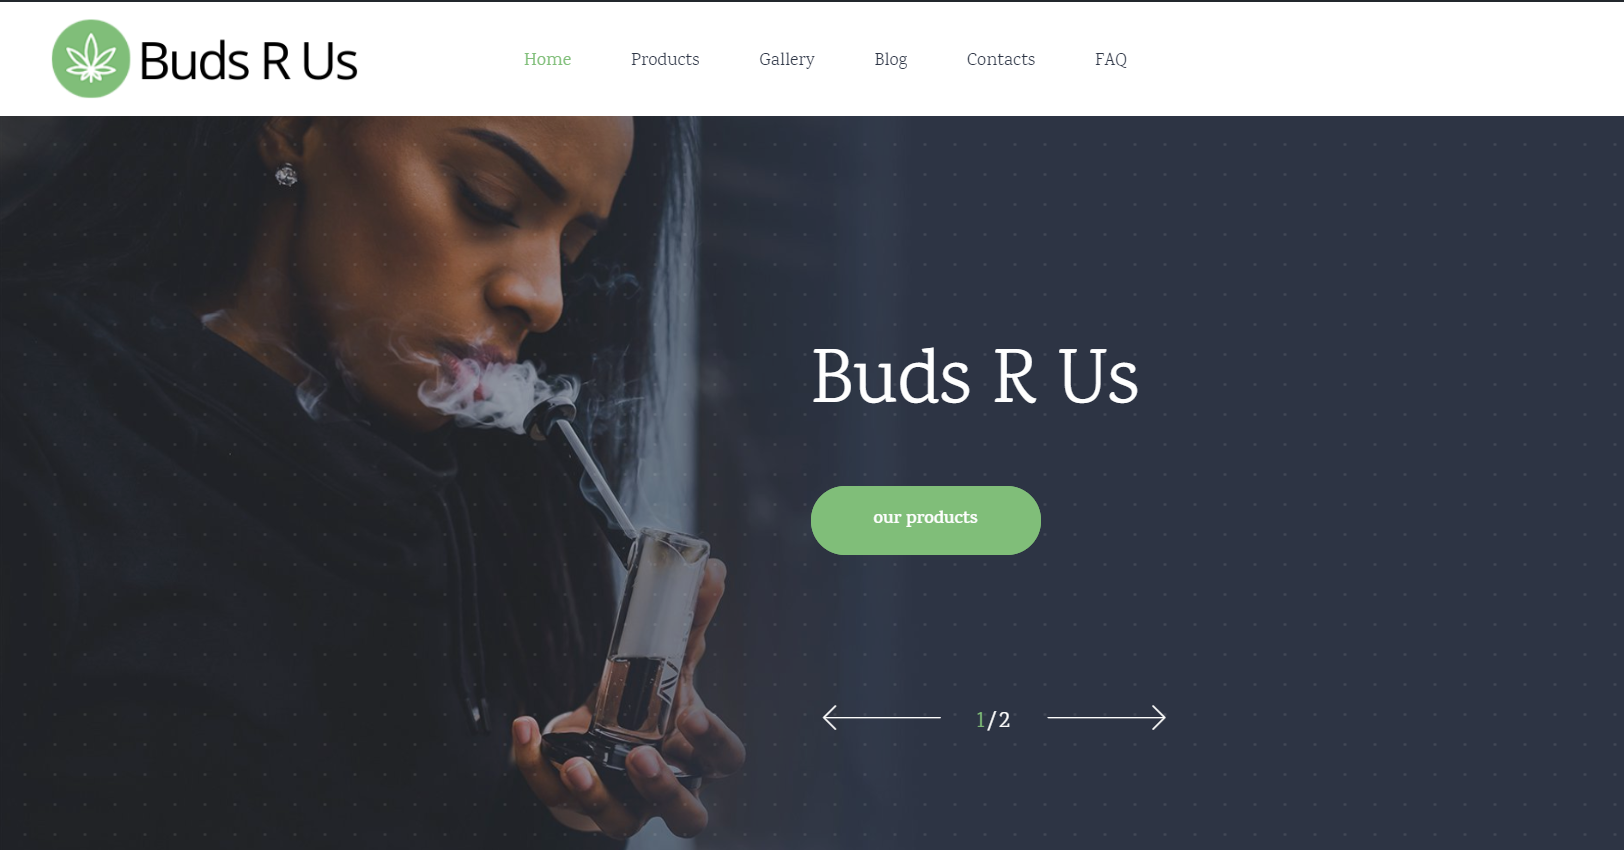 Marijuana Dispensary demo website designed by JH Web Design